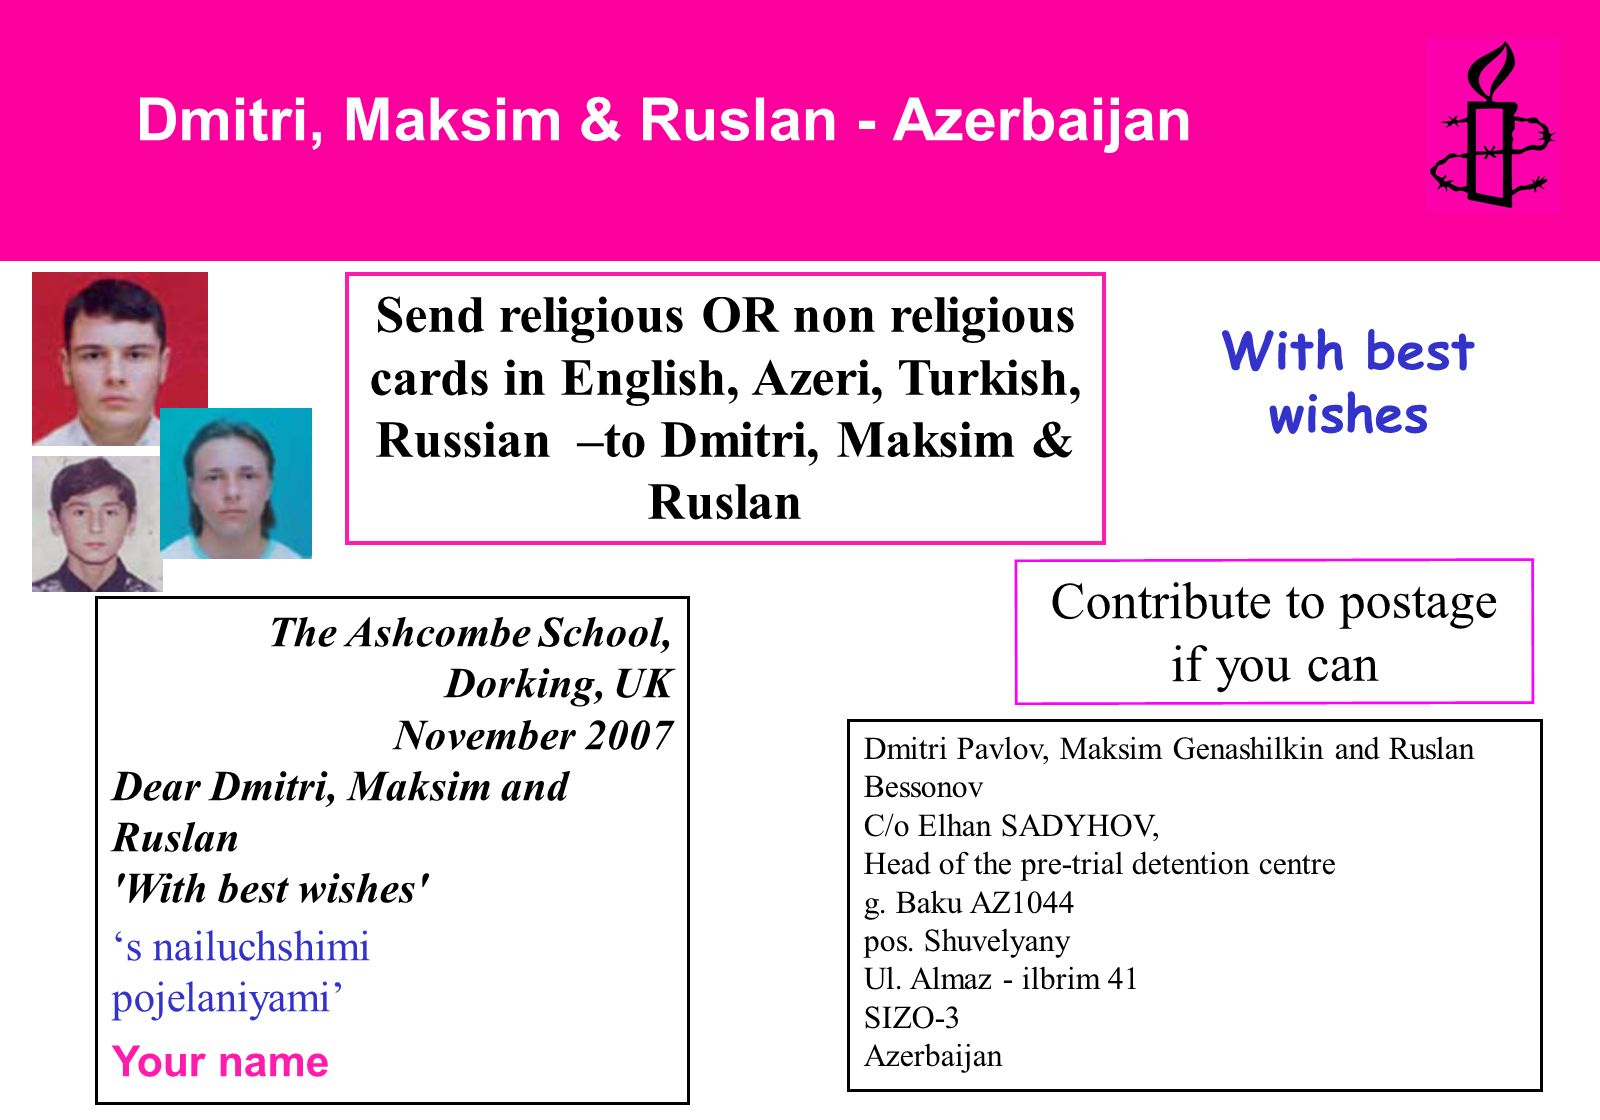 Dmitri, Maksim & Ruslan - Azerbaijan Send religious OR non religious cards in English, Azeri, Turkish, Russian –to Dmitri, Maksim & Ruslan The Ashcombe School, Dorking, UK November 2007 Dear Dmitri, Maksim and Ruslan With best wishes s nailuchshimi pojelaniyami Your name Contribute to postage if you can With best wishes Dmitri Pavlov, Maksim Genashilkin and Ruslan Bessonov C/o Elhan SADYHOV, Head of the pre-trial detention centre g.